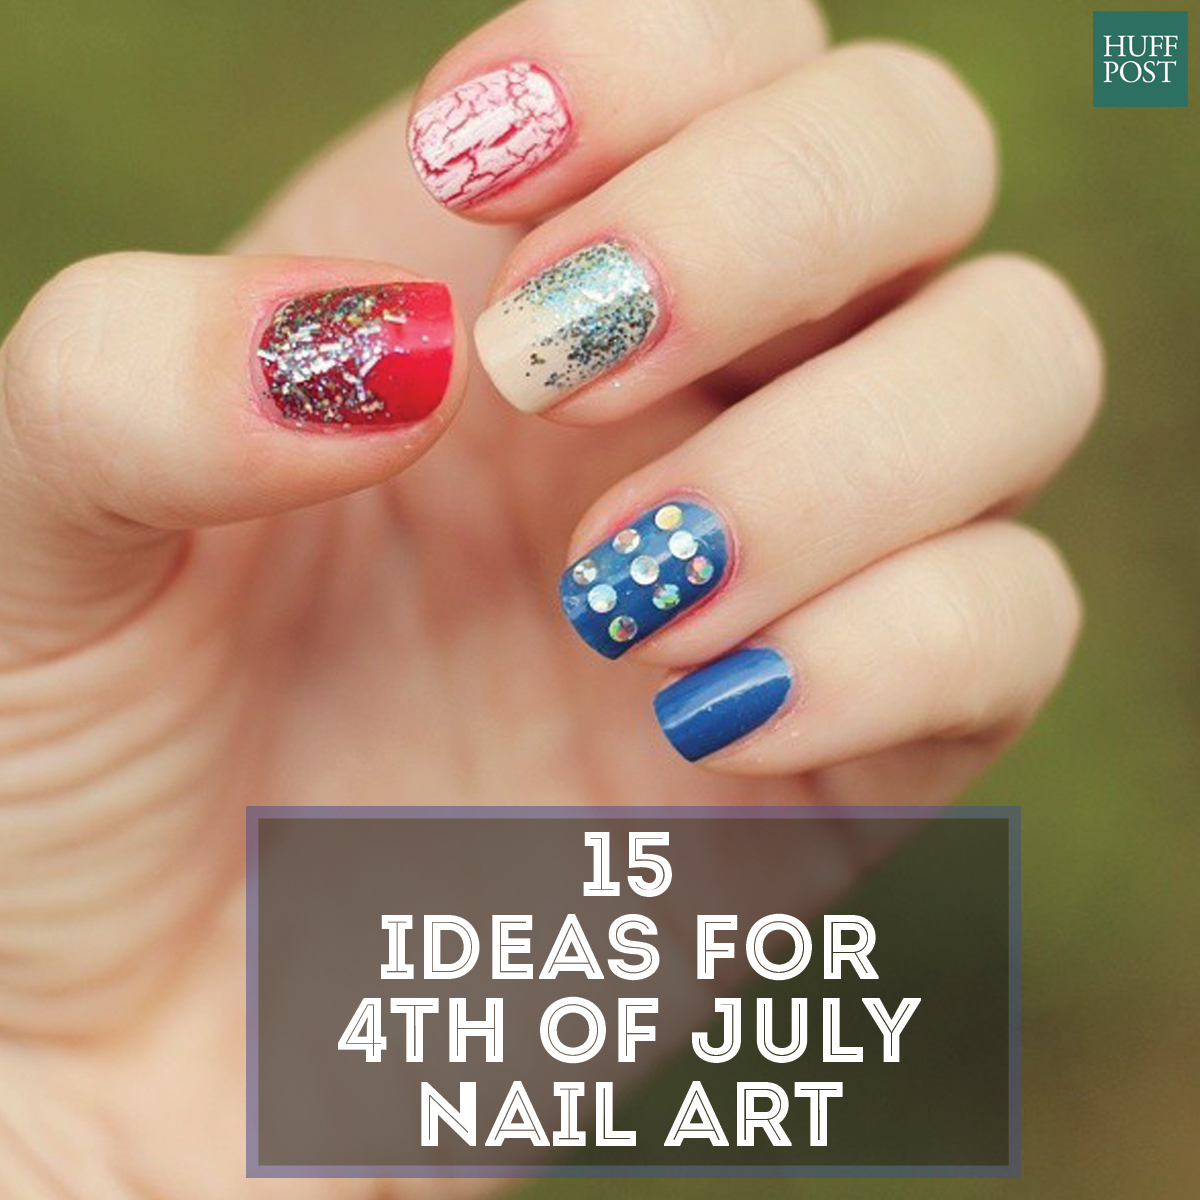 4th nail art card - American Flag Nail Art For Your Fourth Of July Celebration